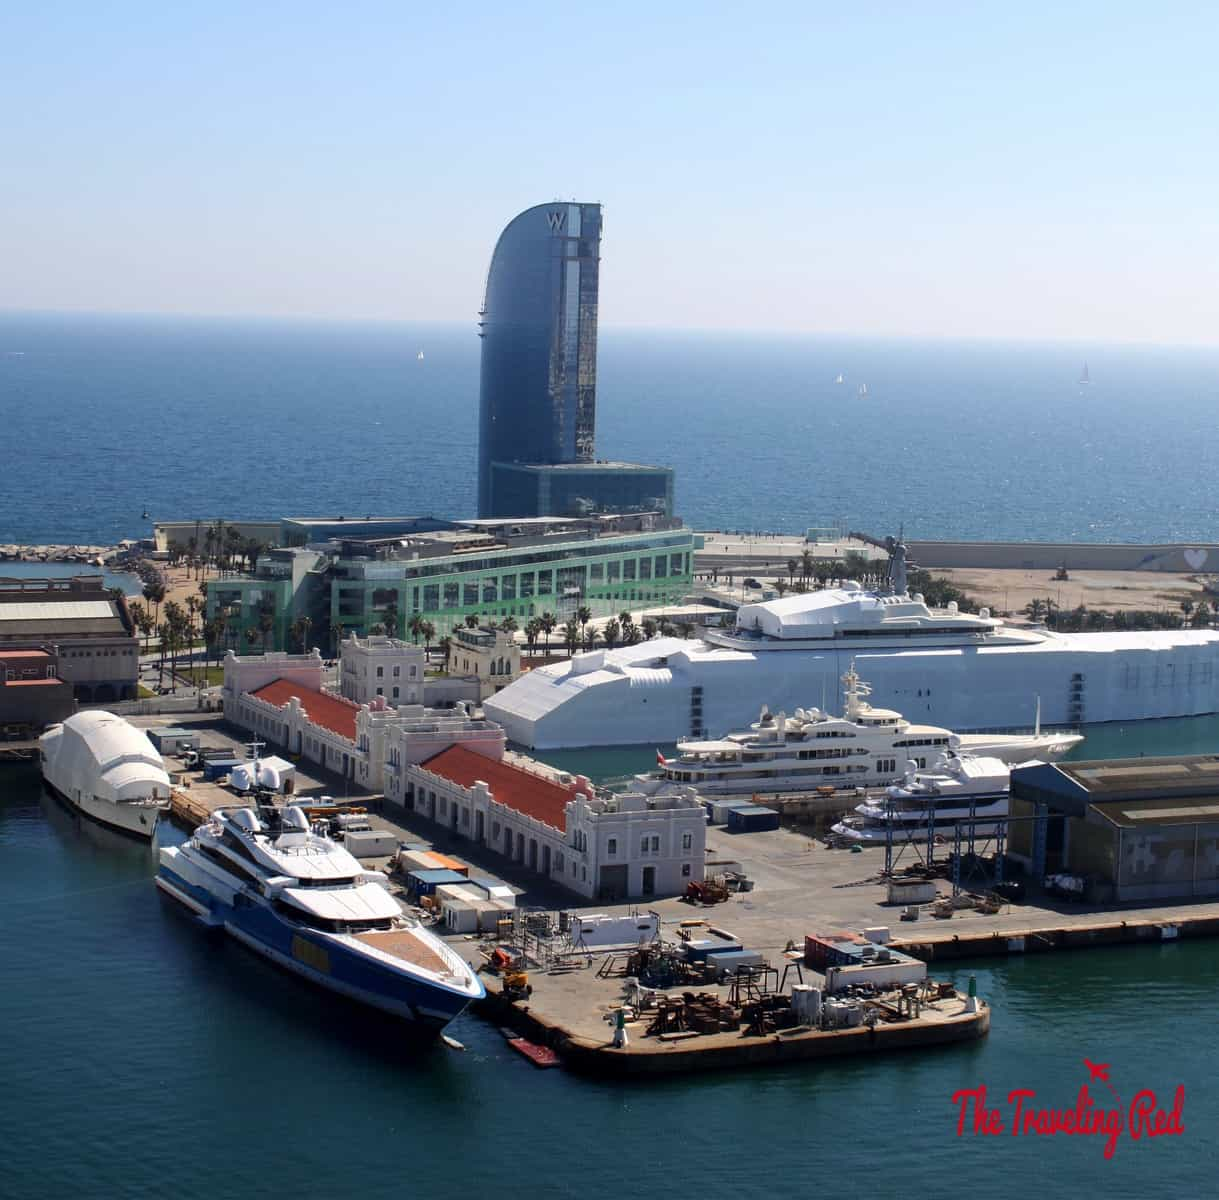 At the end of the boardwalk in Barceloneta is the Teleferic, a cable car that takes you up to Montjuic. The Teleferichas 360 degree viewsoverlookingBarcelona, the beach and the marina full of mega-yachts.